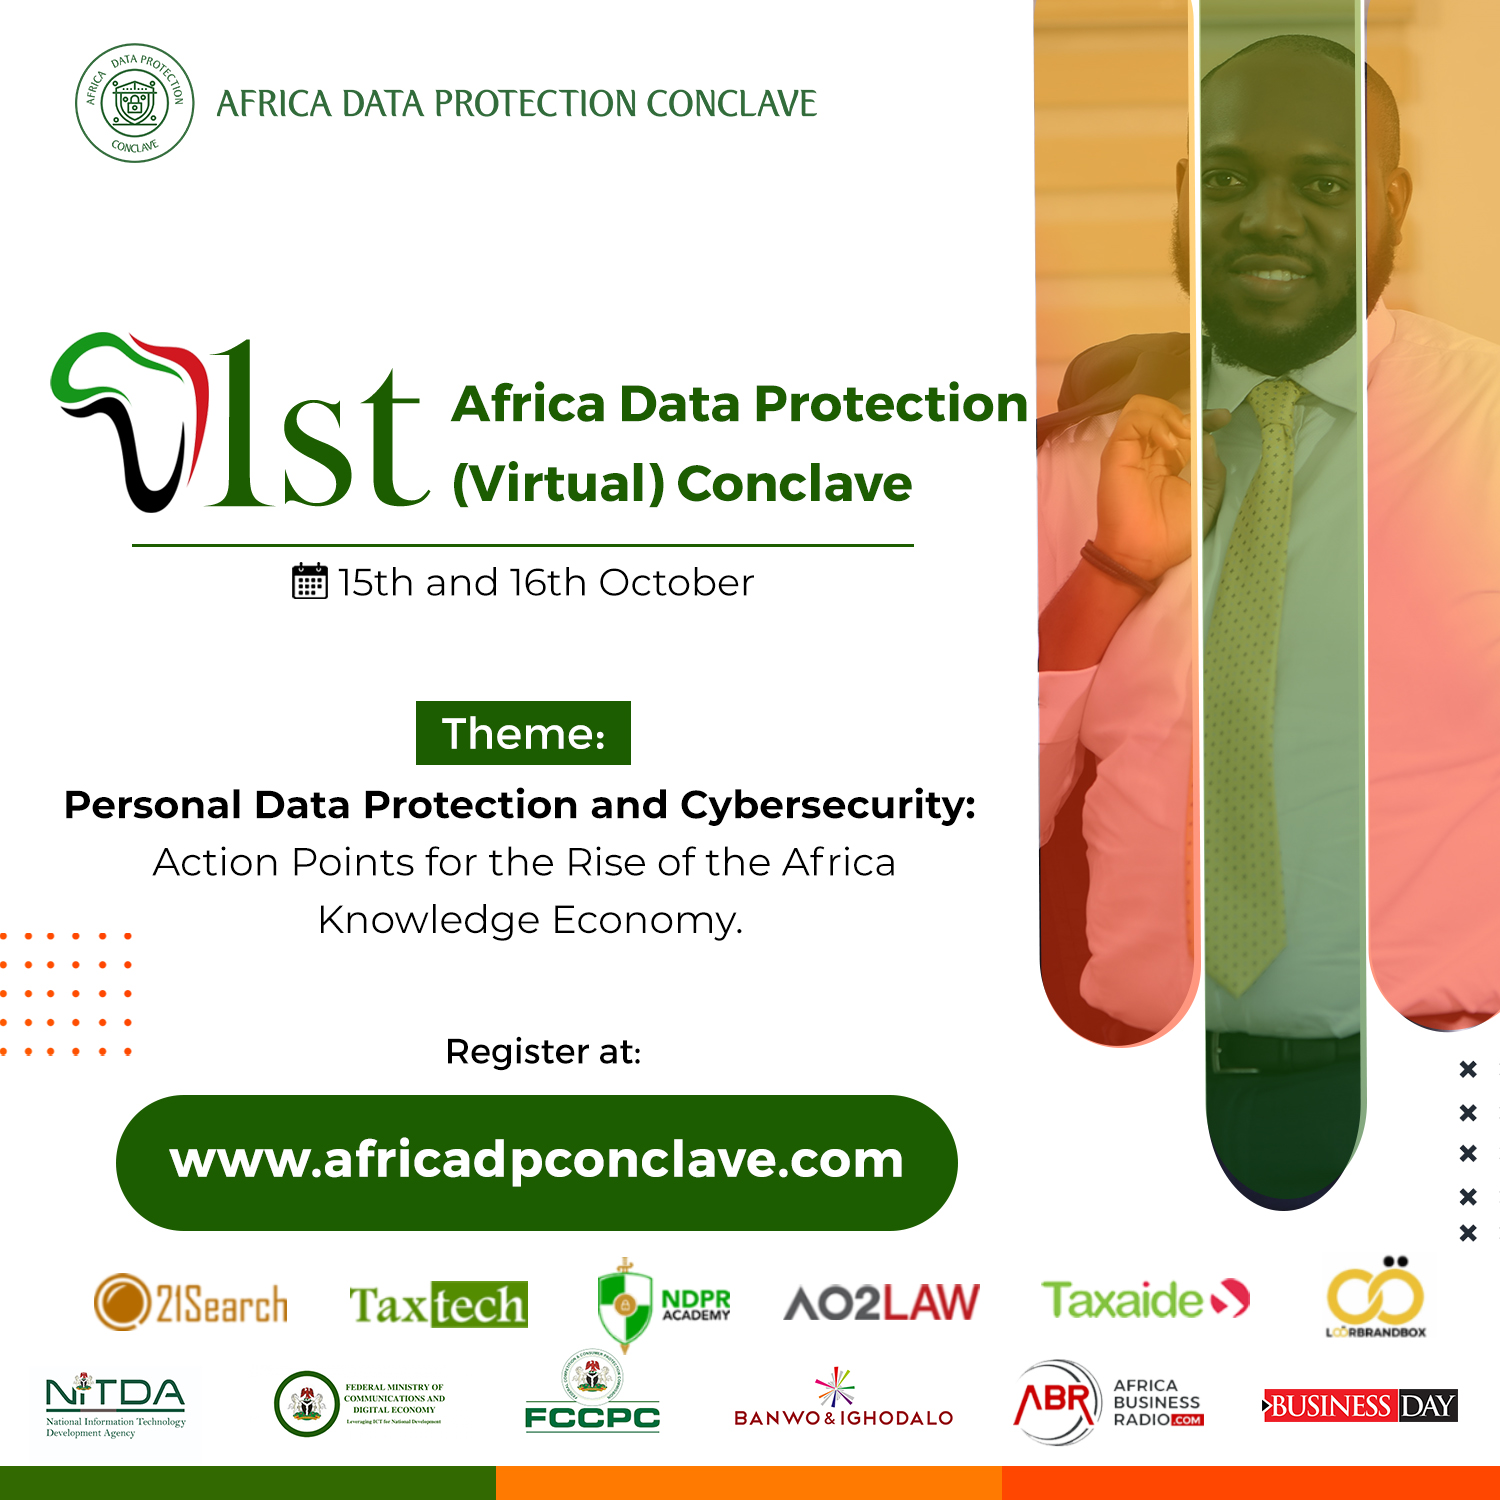 1st Africa Data Protection Conclave set to hold October 15th and 16th   www.brandspurng.com